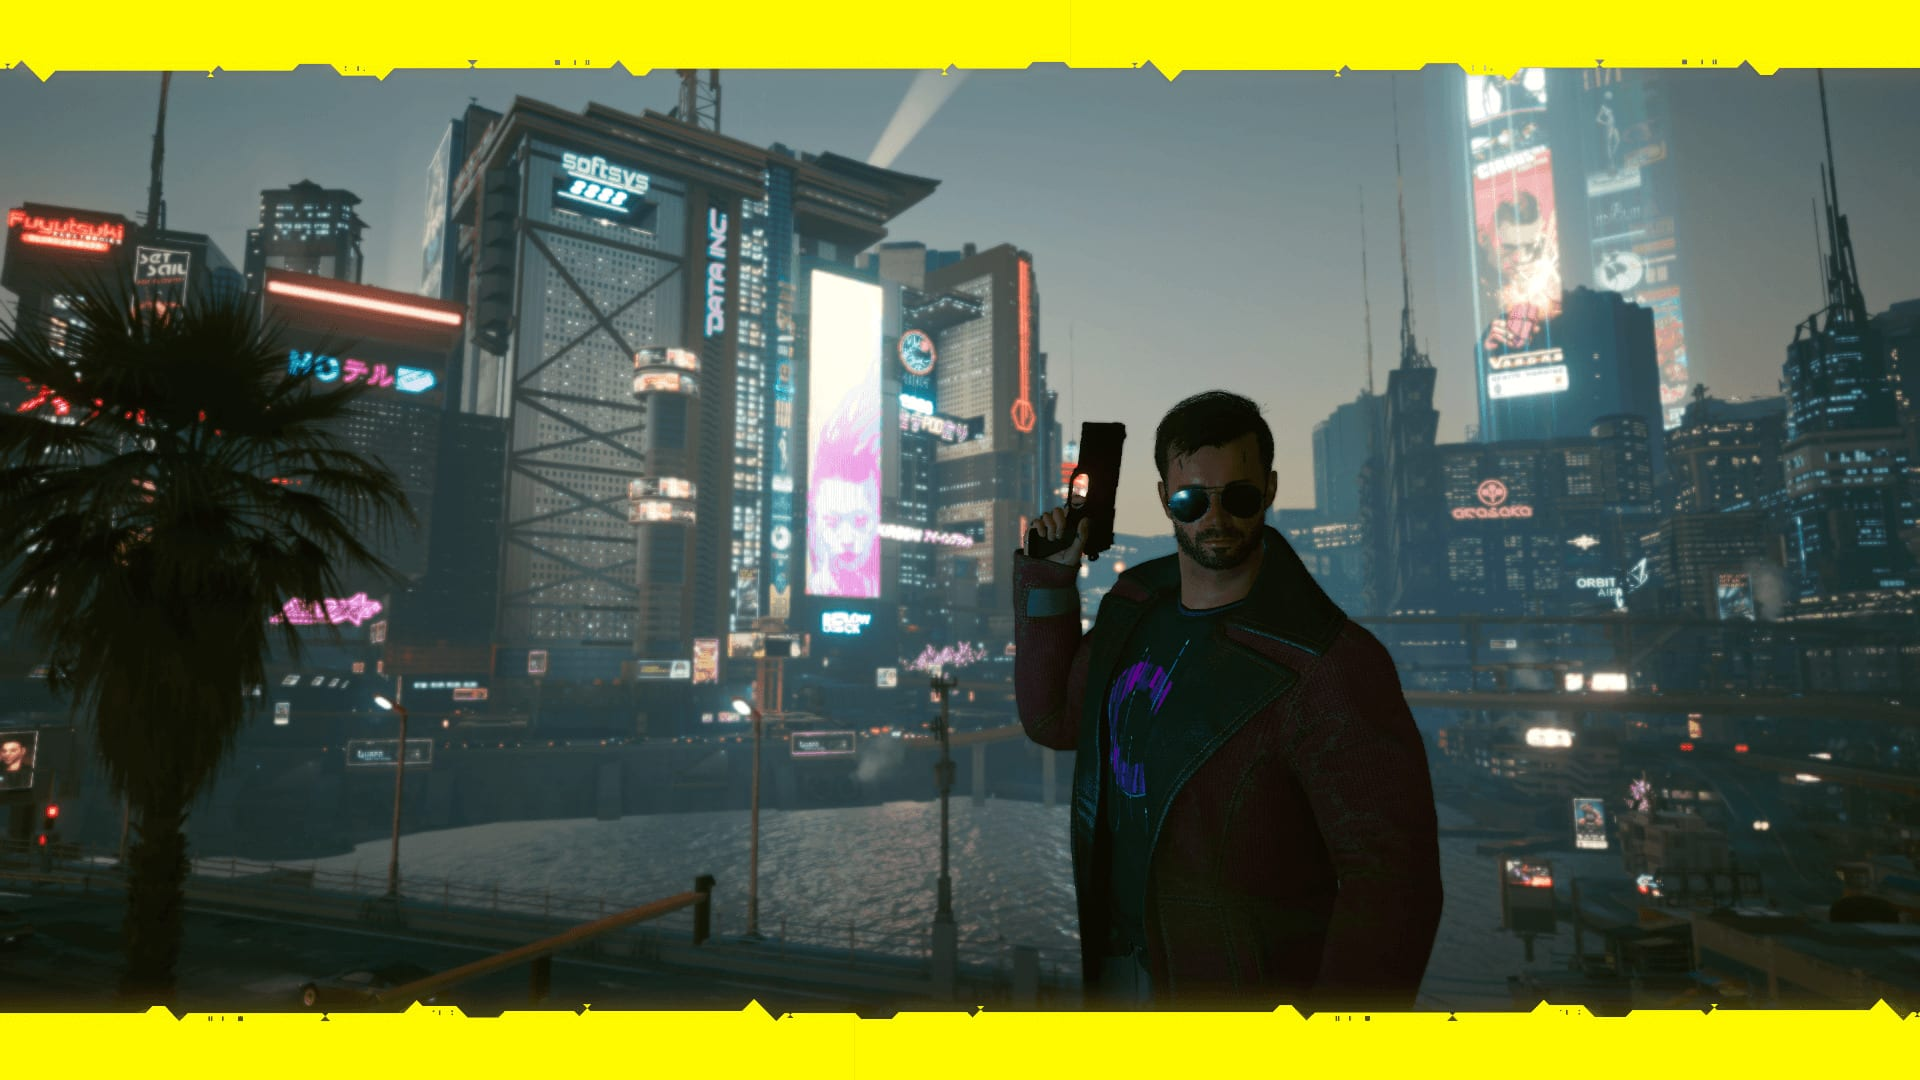 Night City Night - Cyberpunk 2077